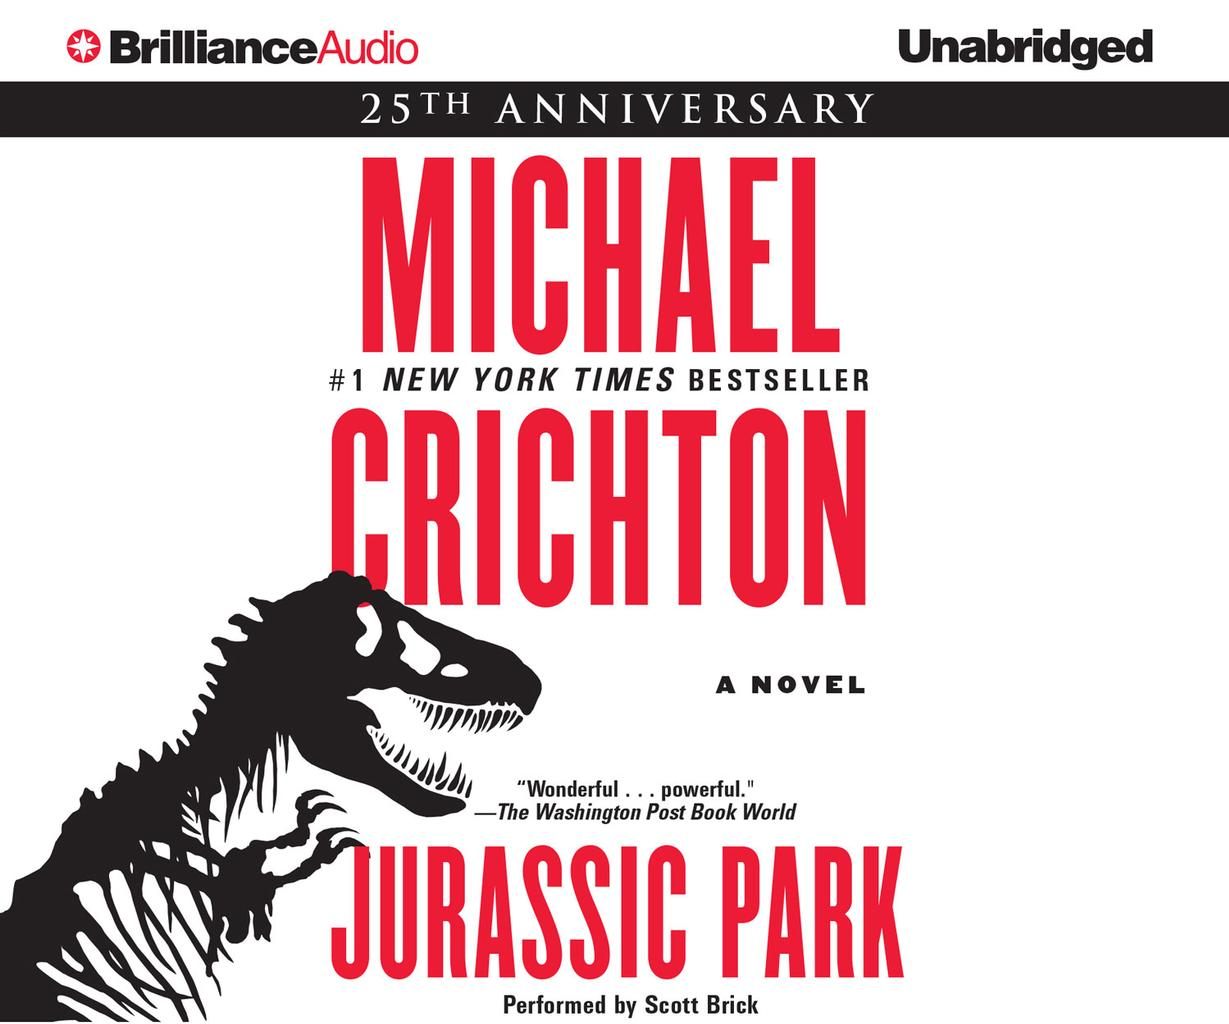 Park Jurassic Empire The Best Gifts MerchandiseMovies And v8N0Omnw